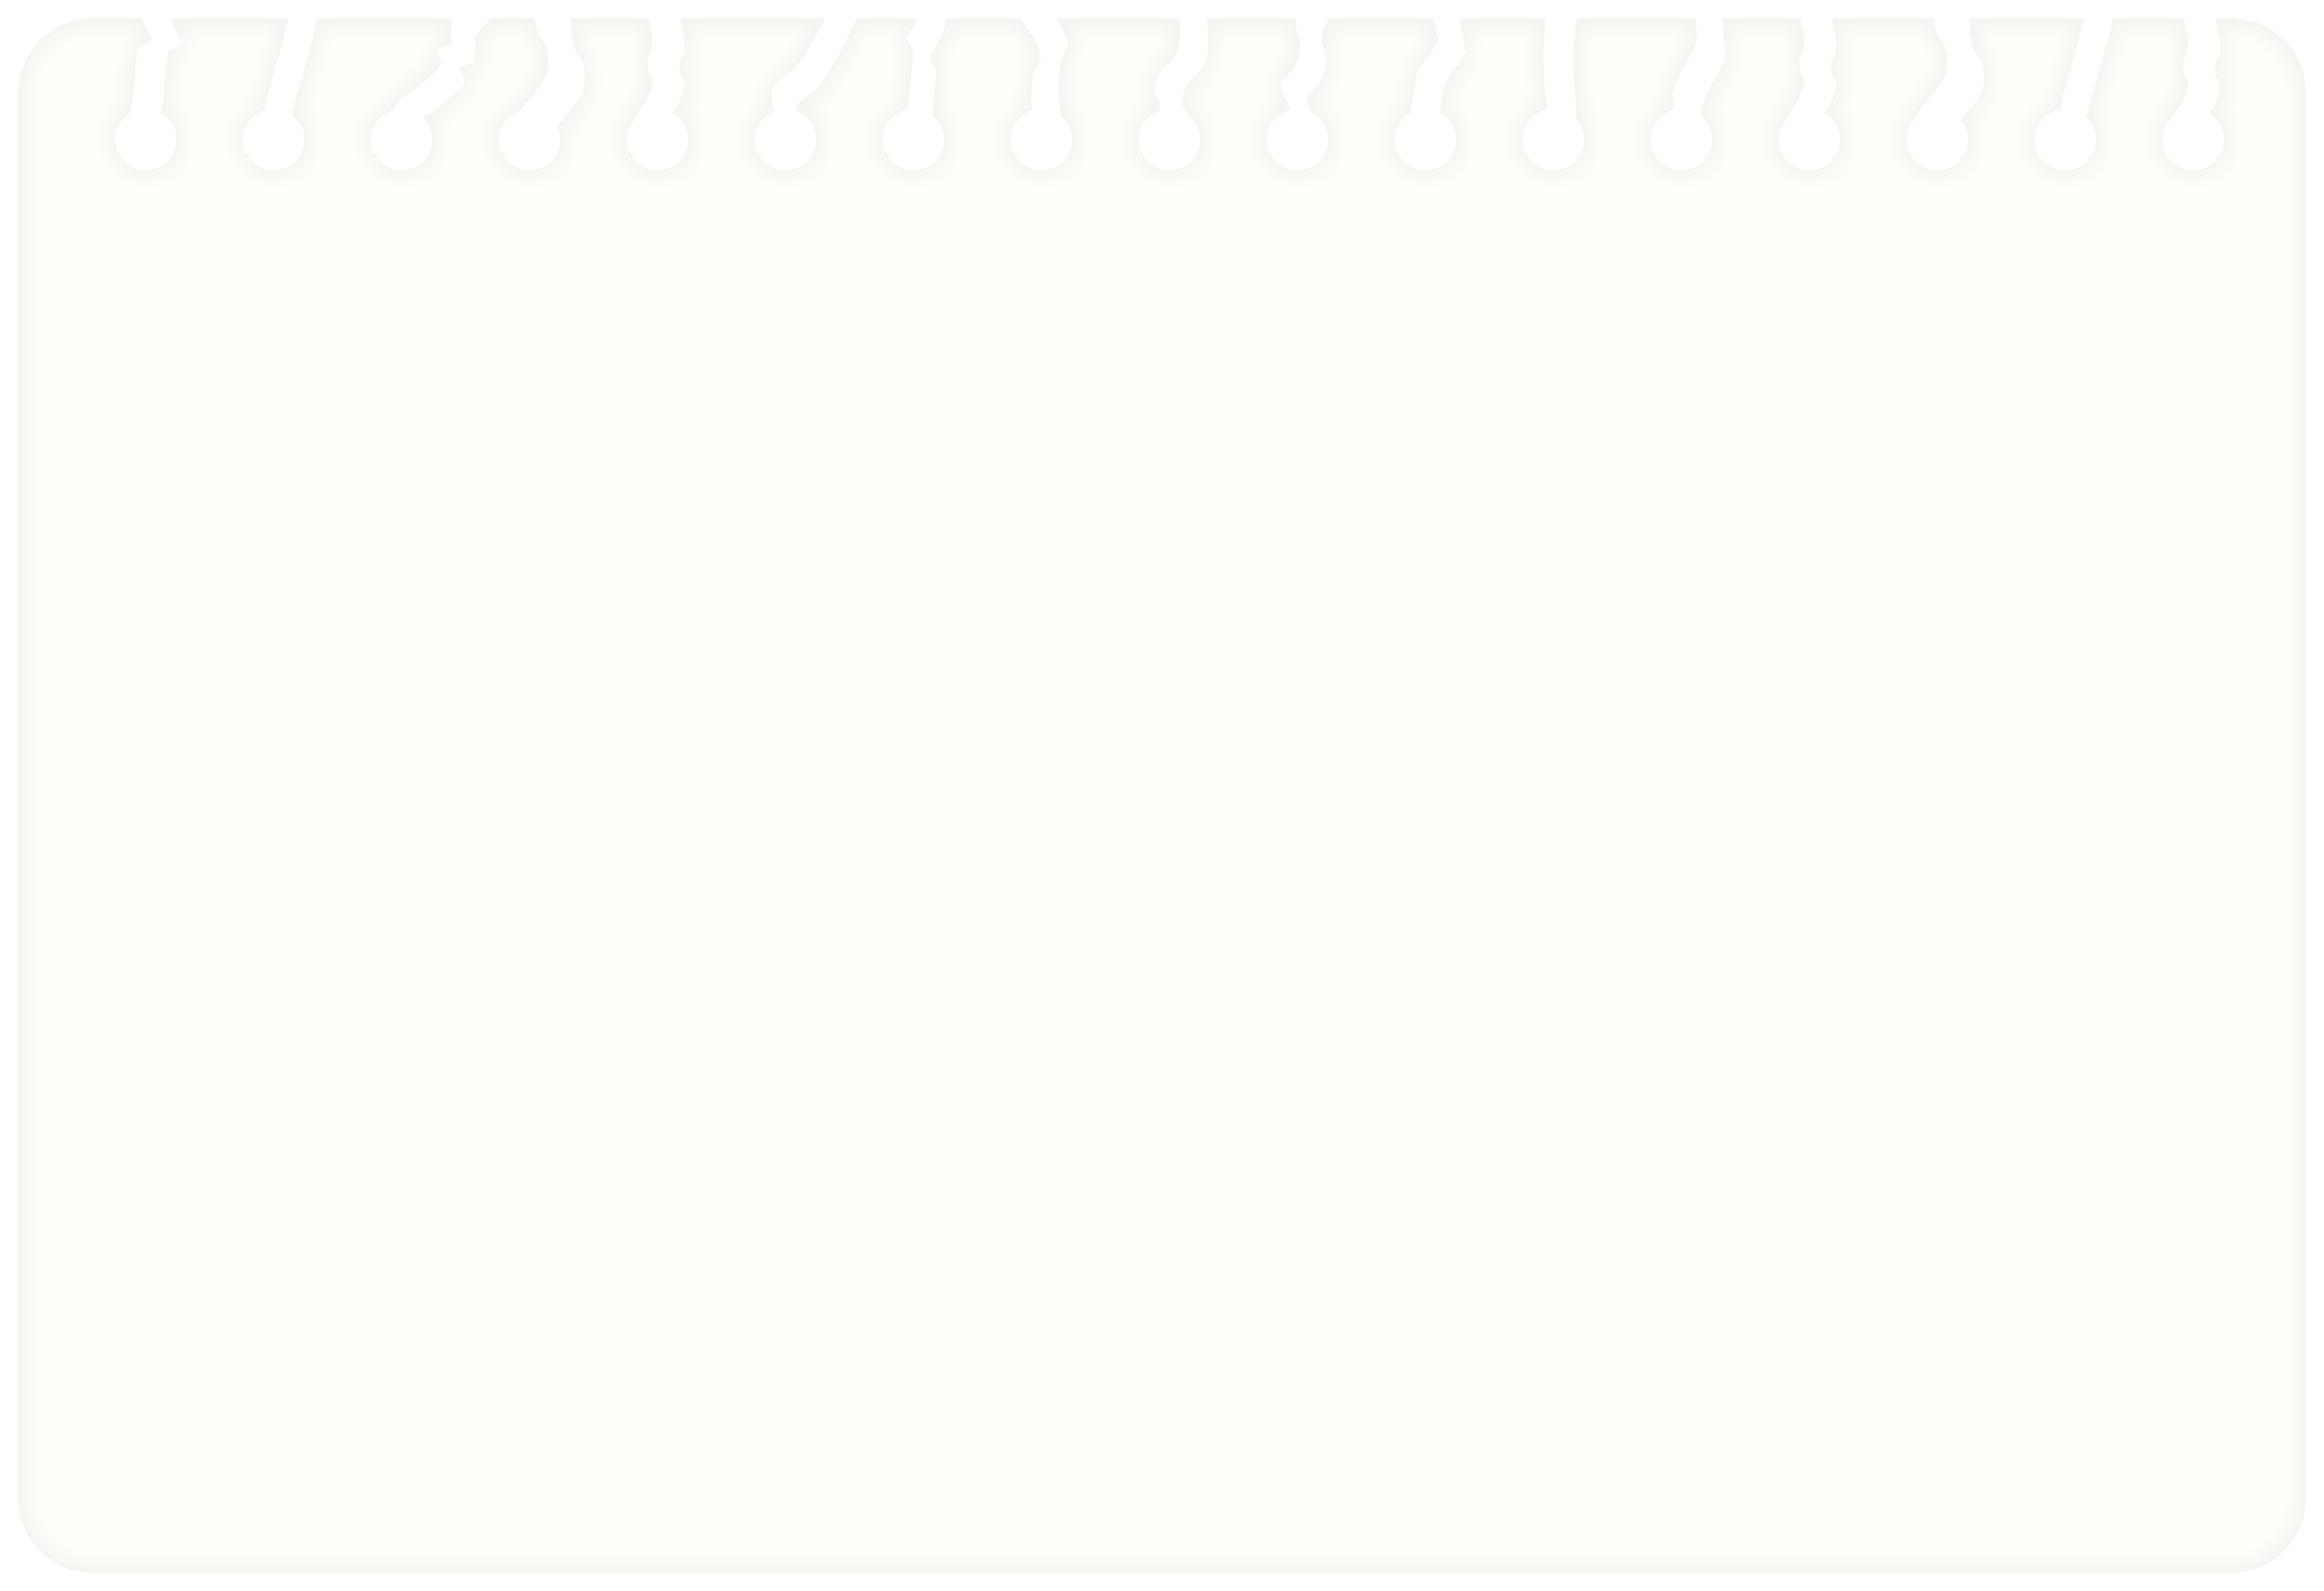 Spiral Notebook Page Clip Art Image.